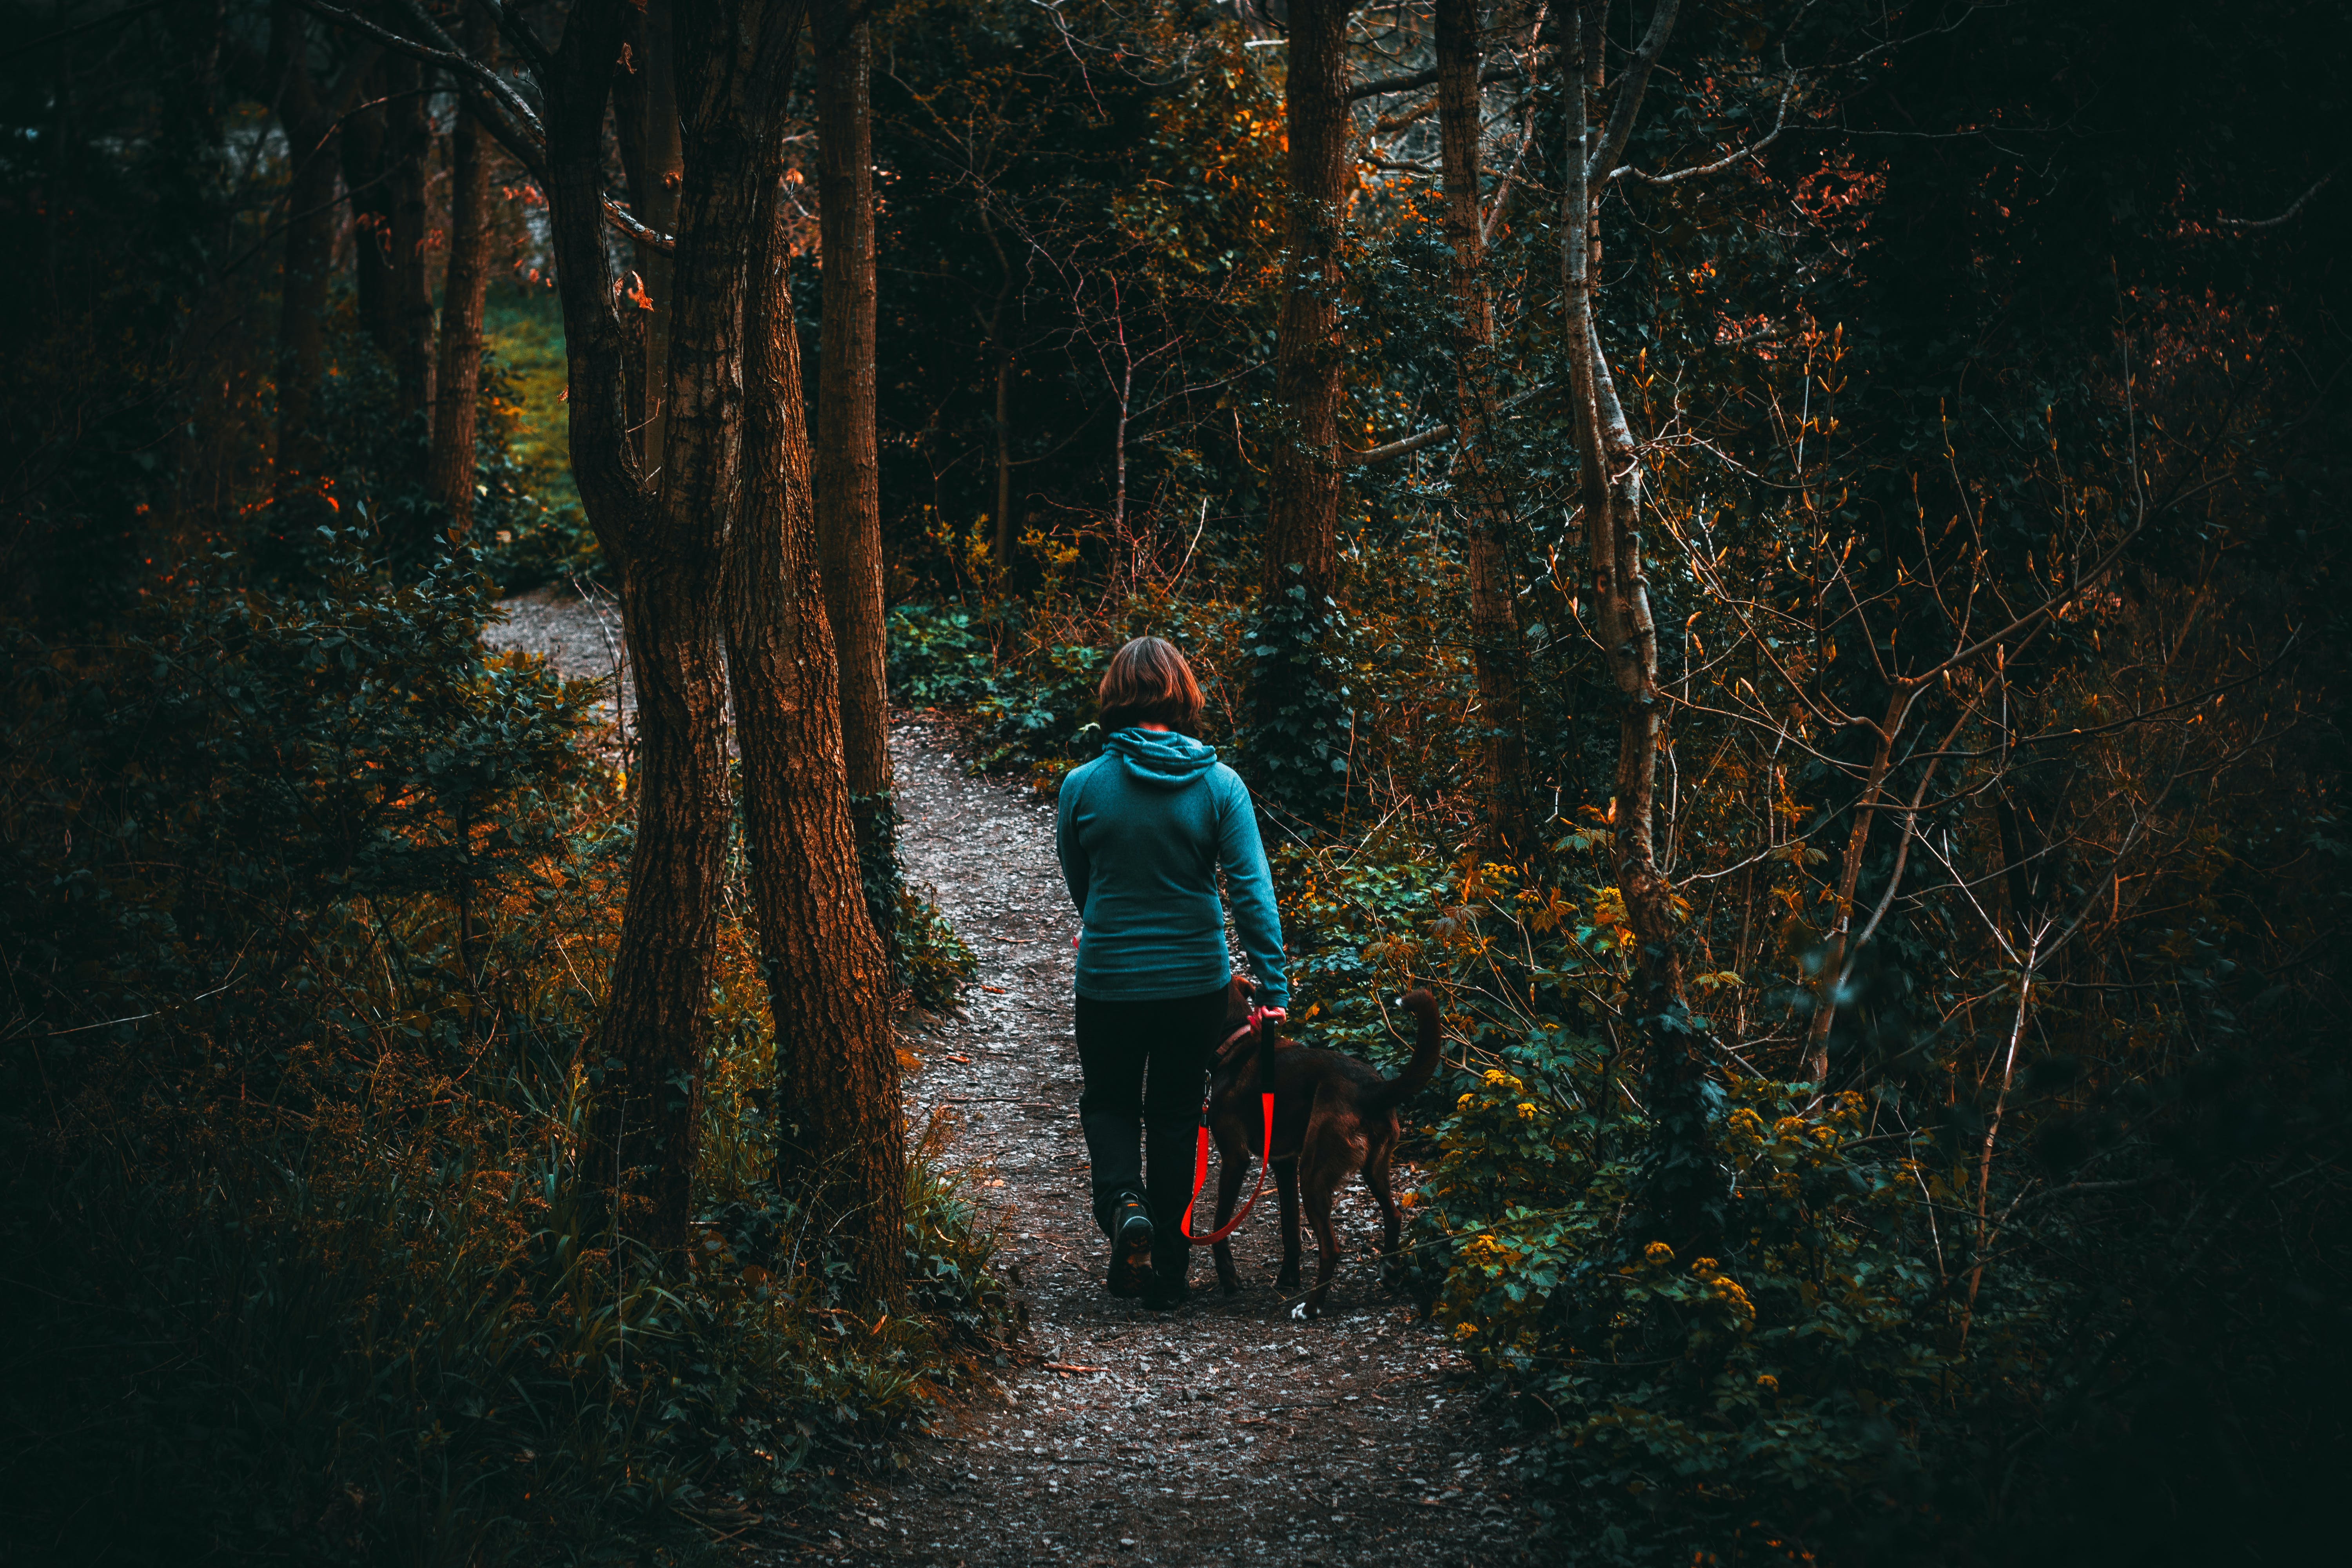 Woman Beside Dog Walking in the Forest Under Tall Trees at Daytime